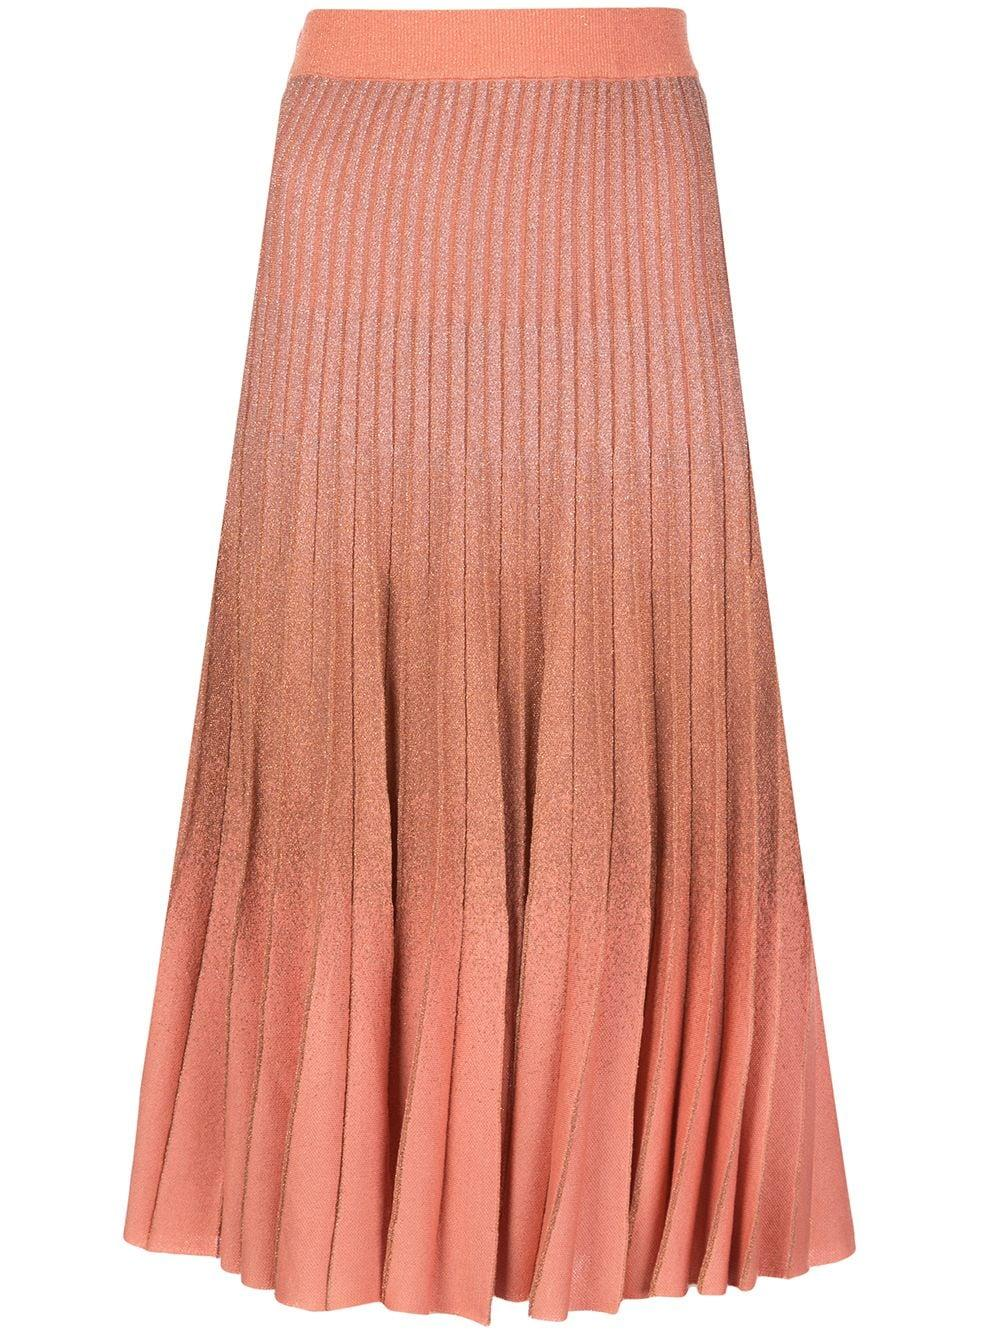 Cyrilla Ombre Pleated Knit Skirt Item # 20809